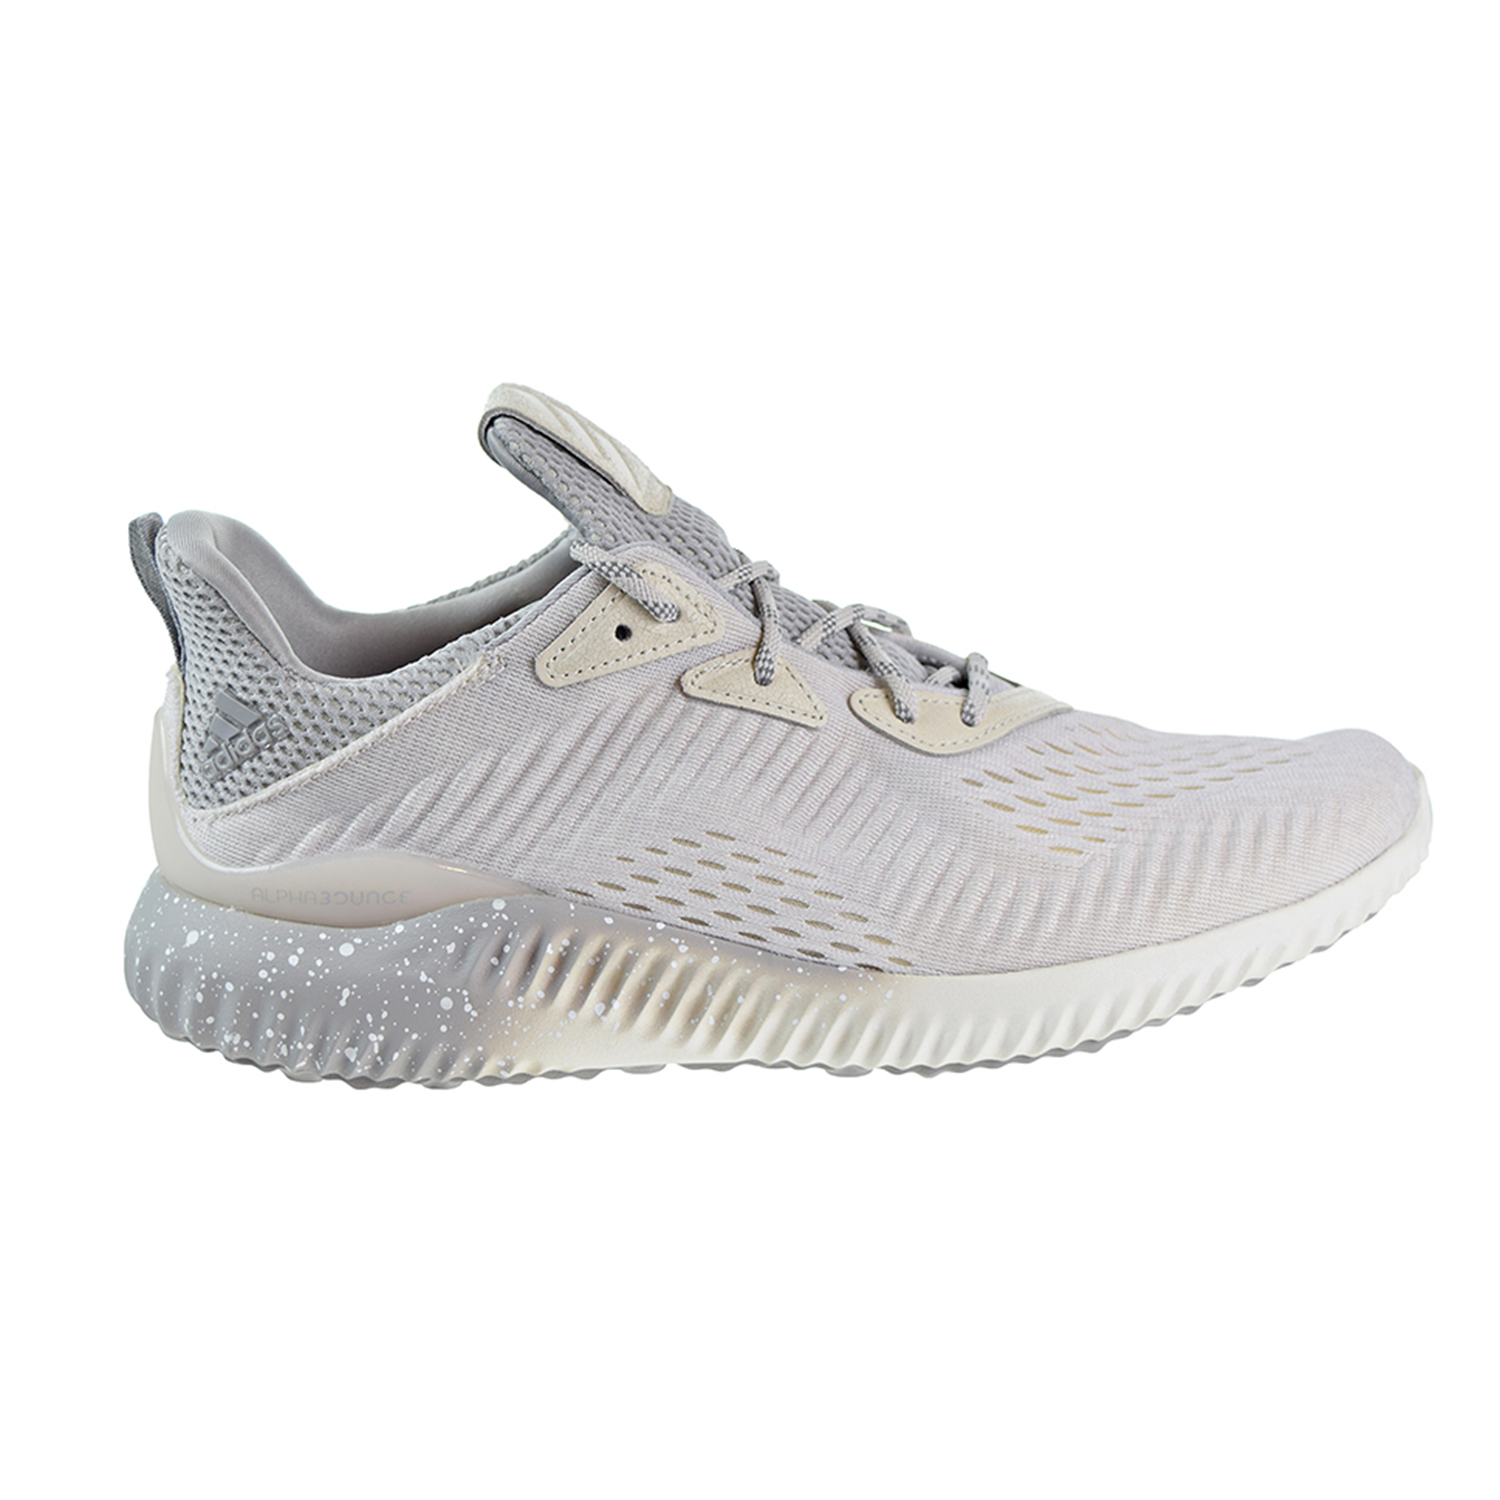 Adidas Alphabounce 1 Reigning Champ